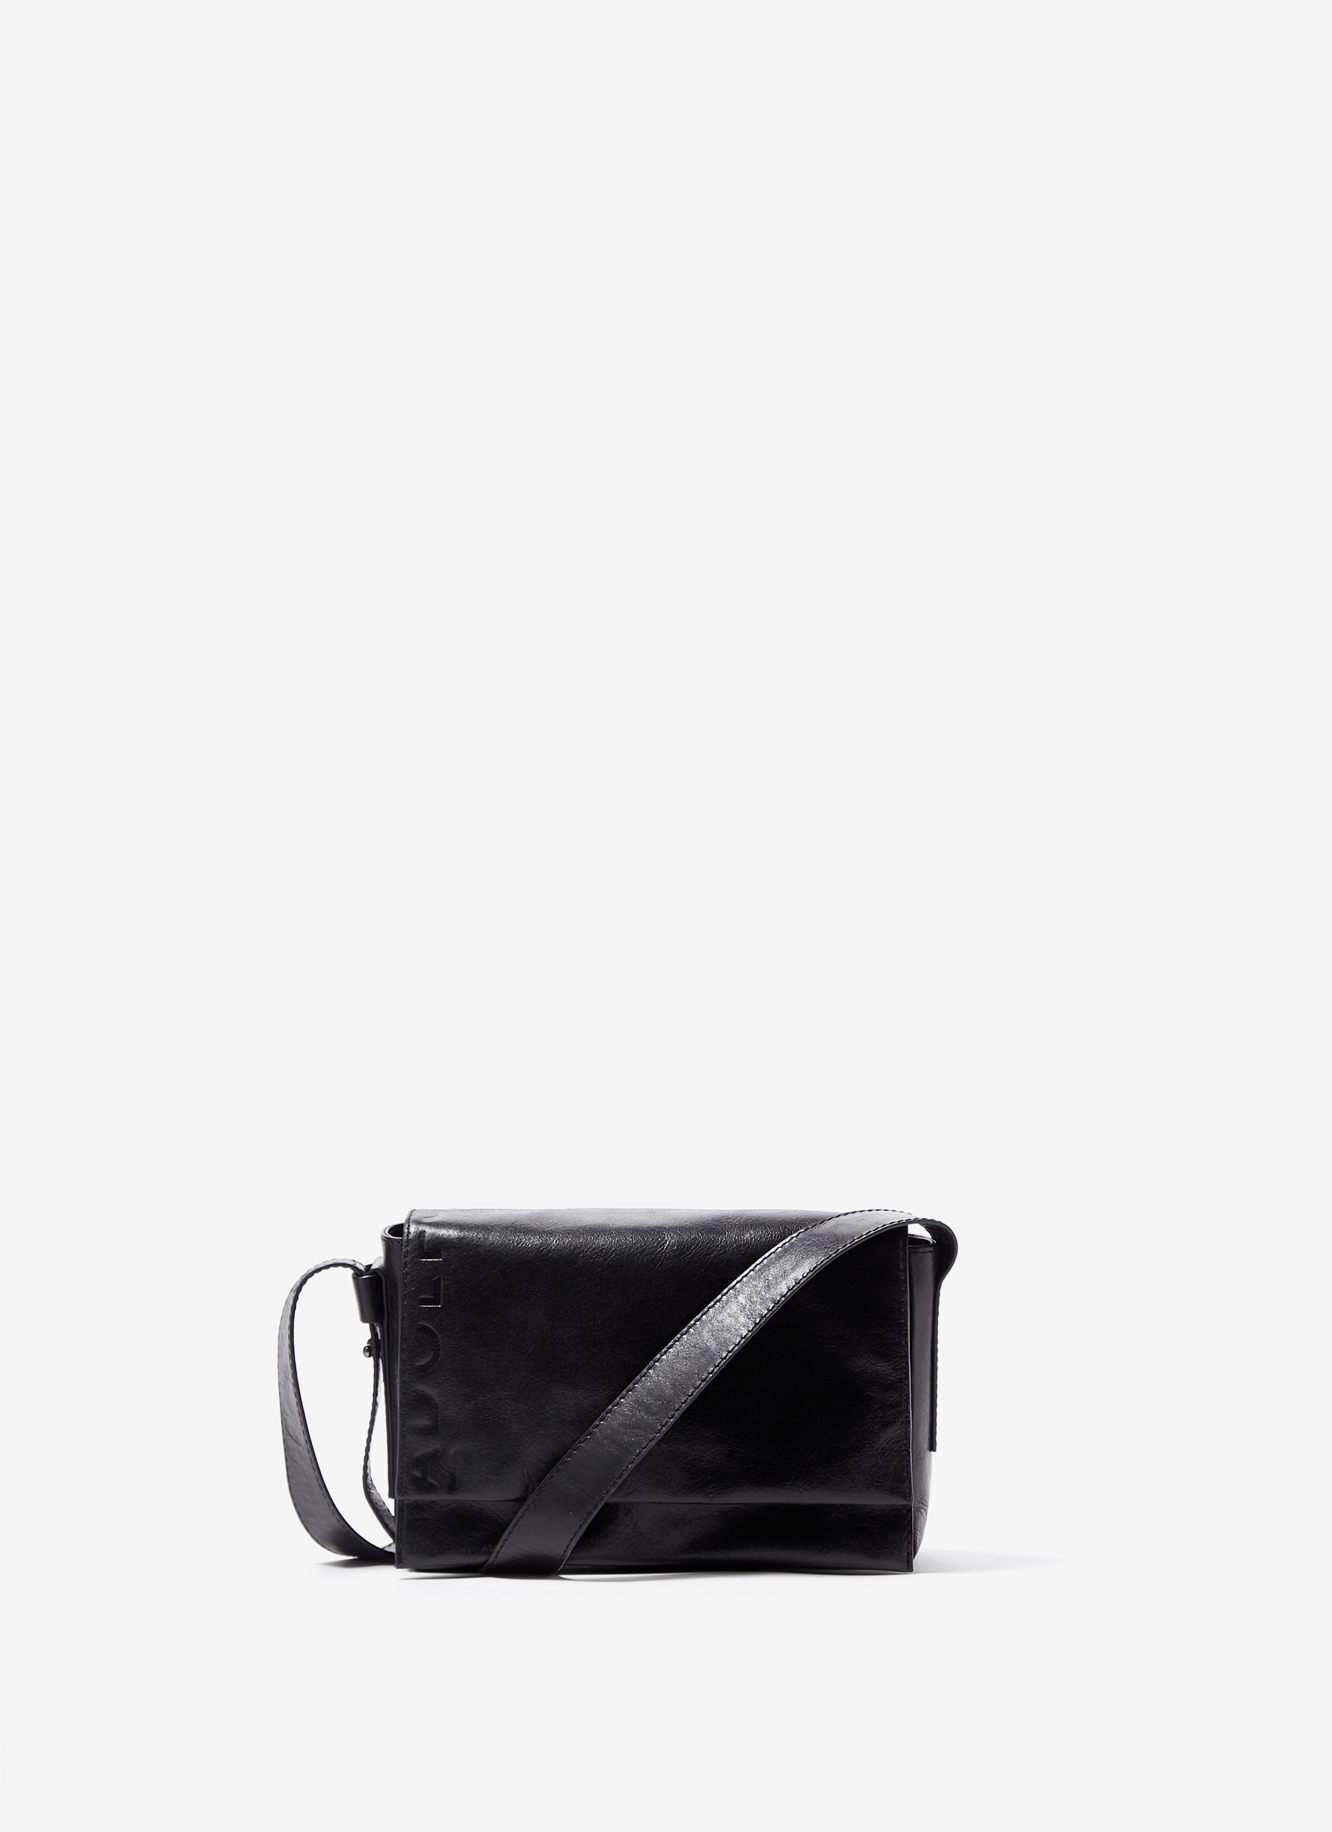 CRACKLED GLOSSY LEATHER FLAP BAG